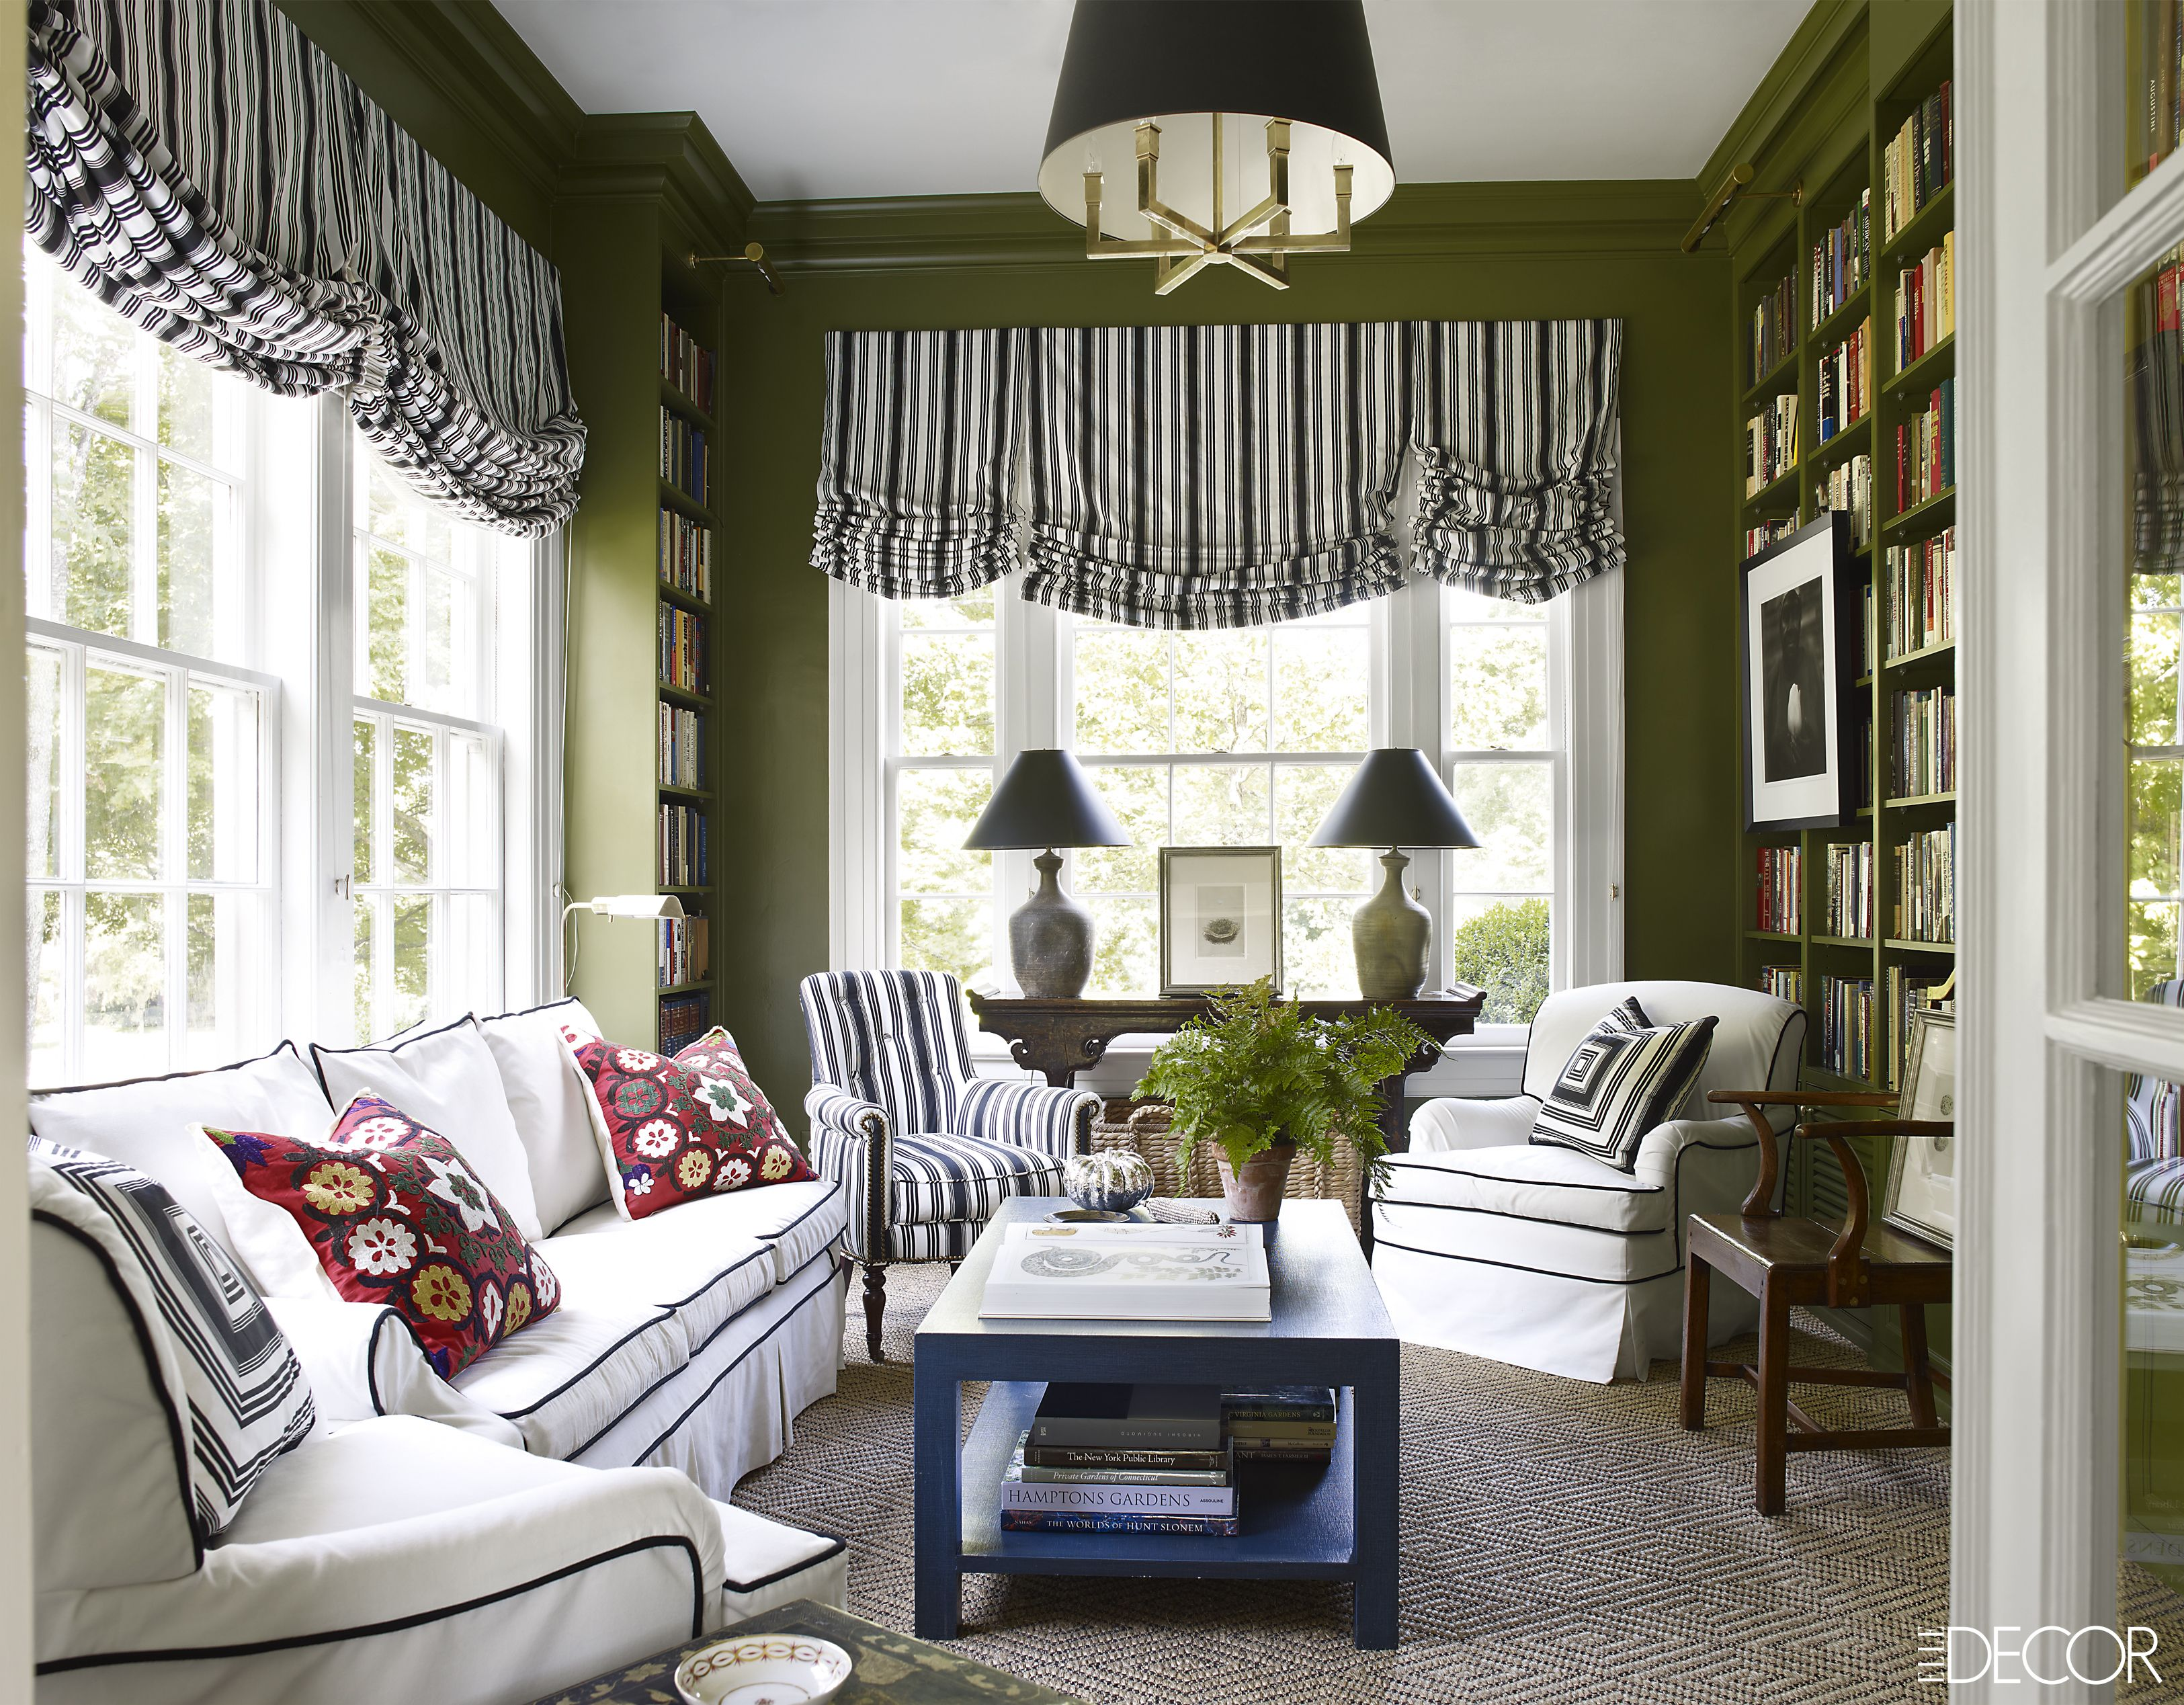 Living Room Ideas Olive Green 20 olive green paint color & decor ideas - olive green walls